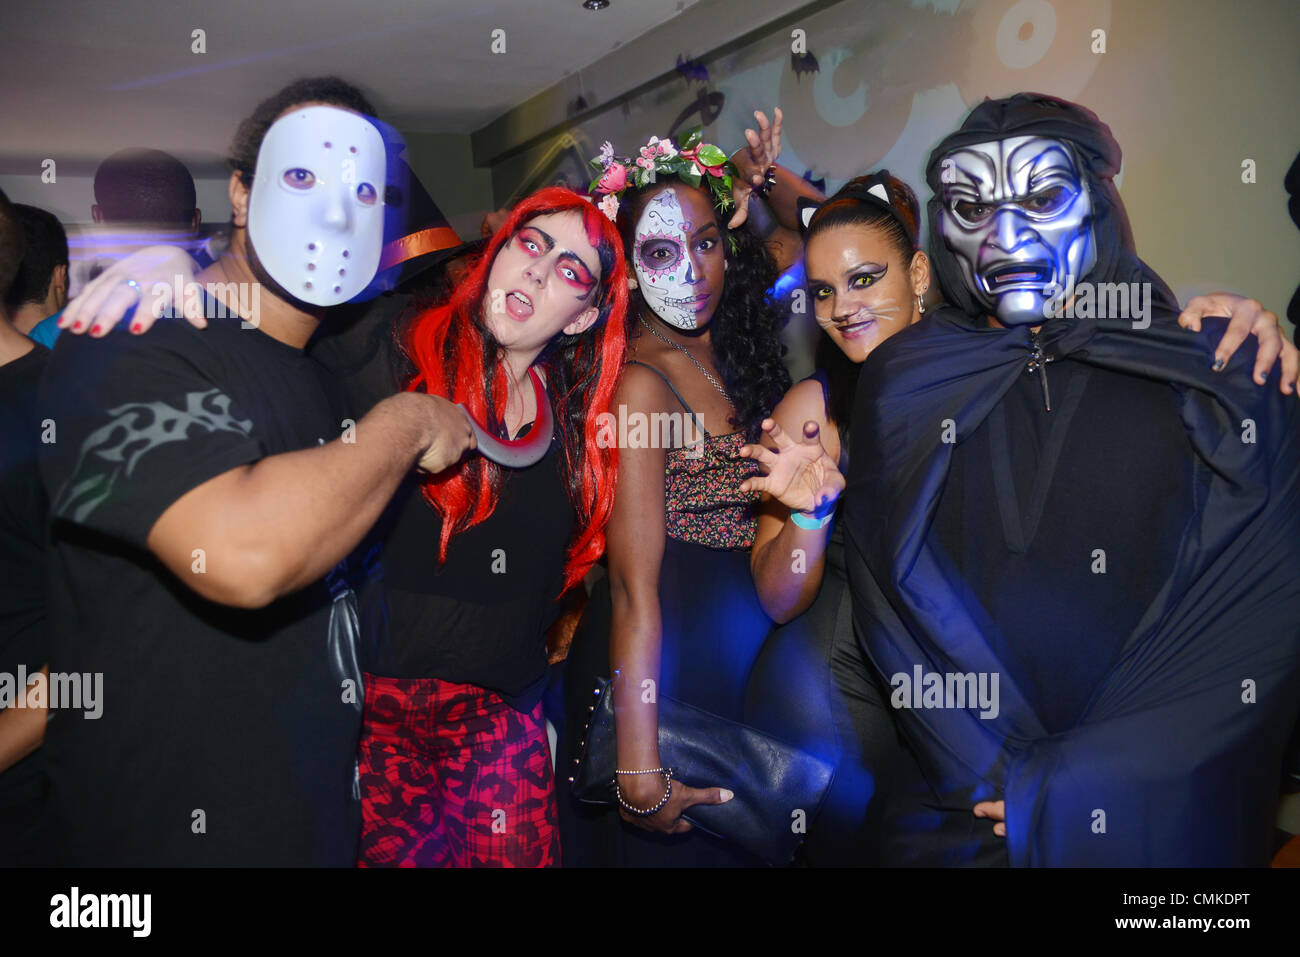 London UK 1st Nov 2013 : Halloween party at Camden Town came to ...